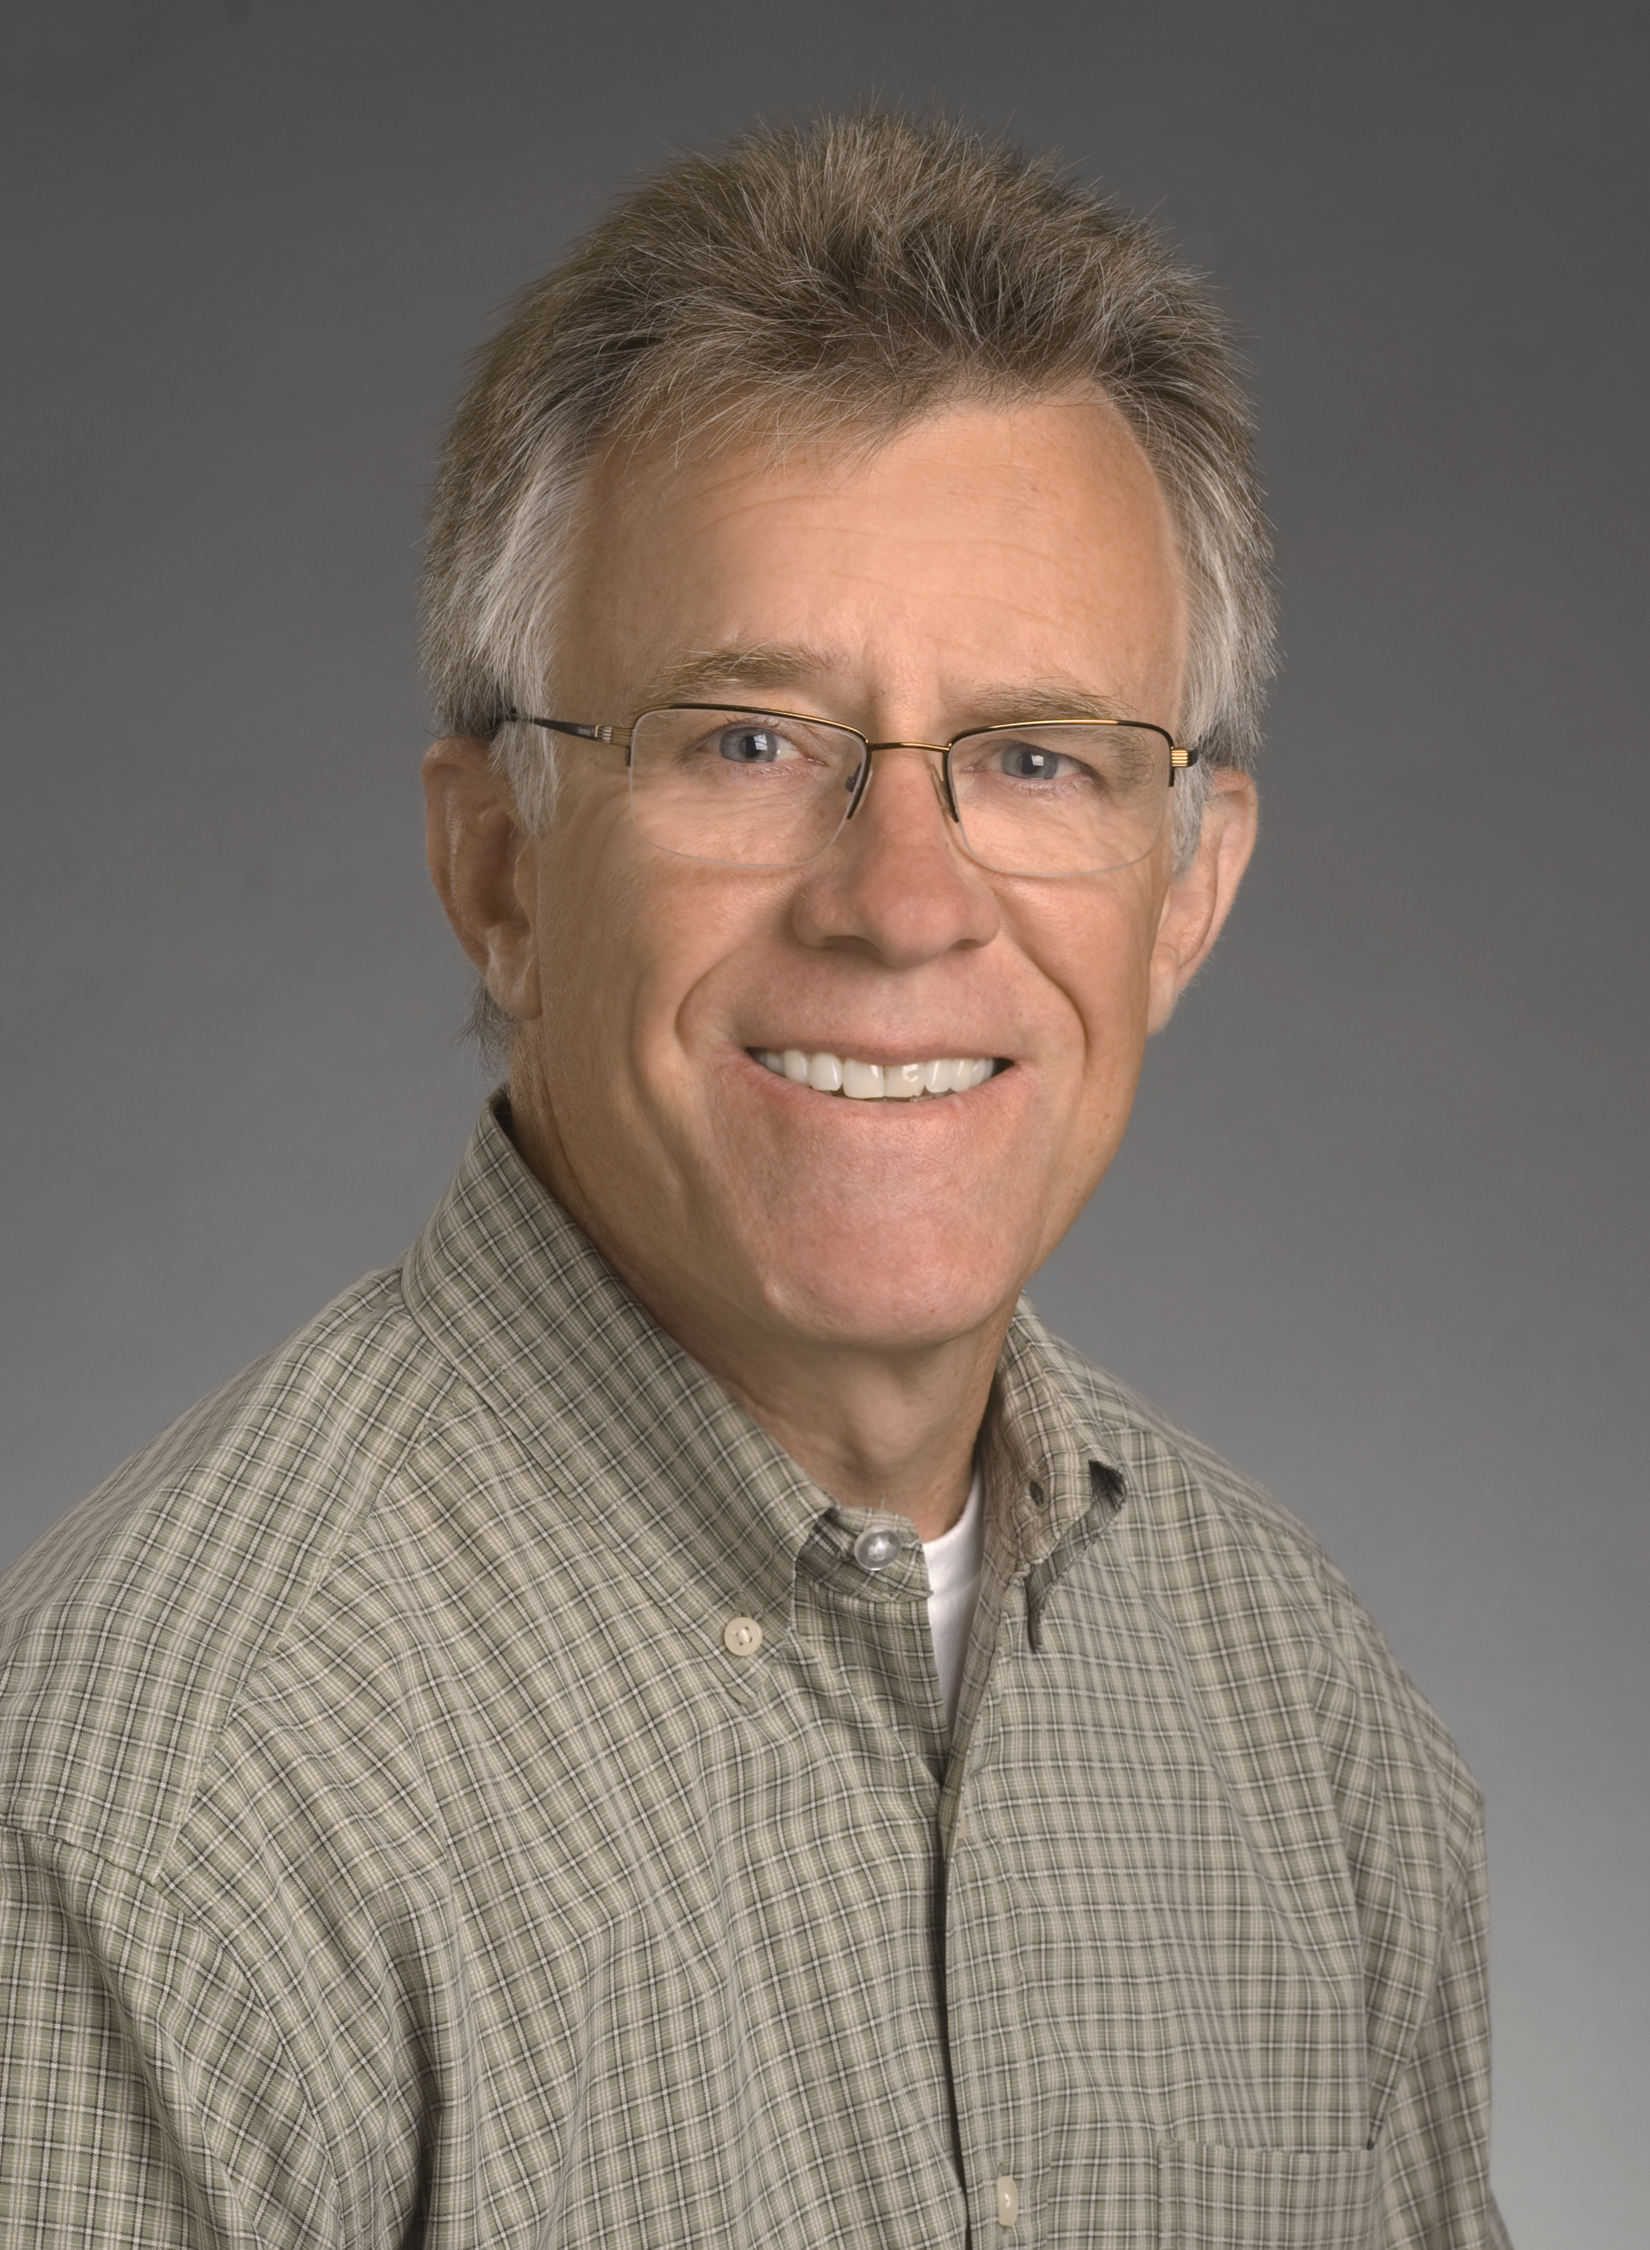 John Griffiths, Health Services/Campus Rec, Studio Portrait